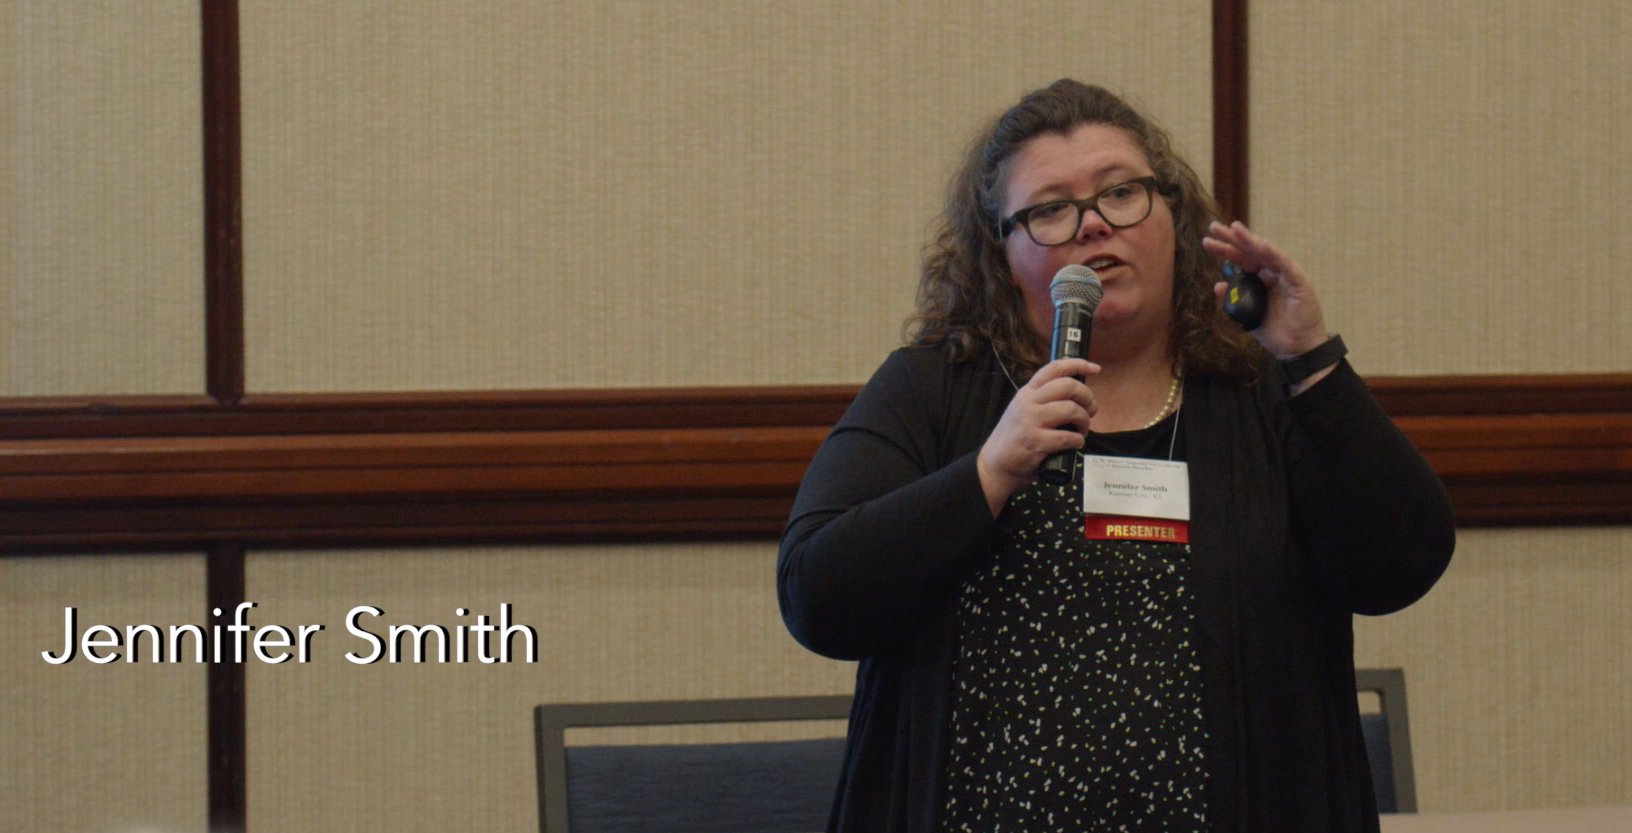 2019 Ignite Session by Jennifer Smith